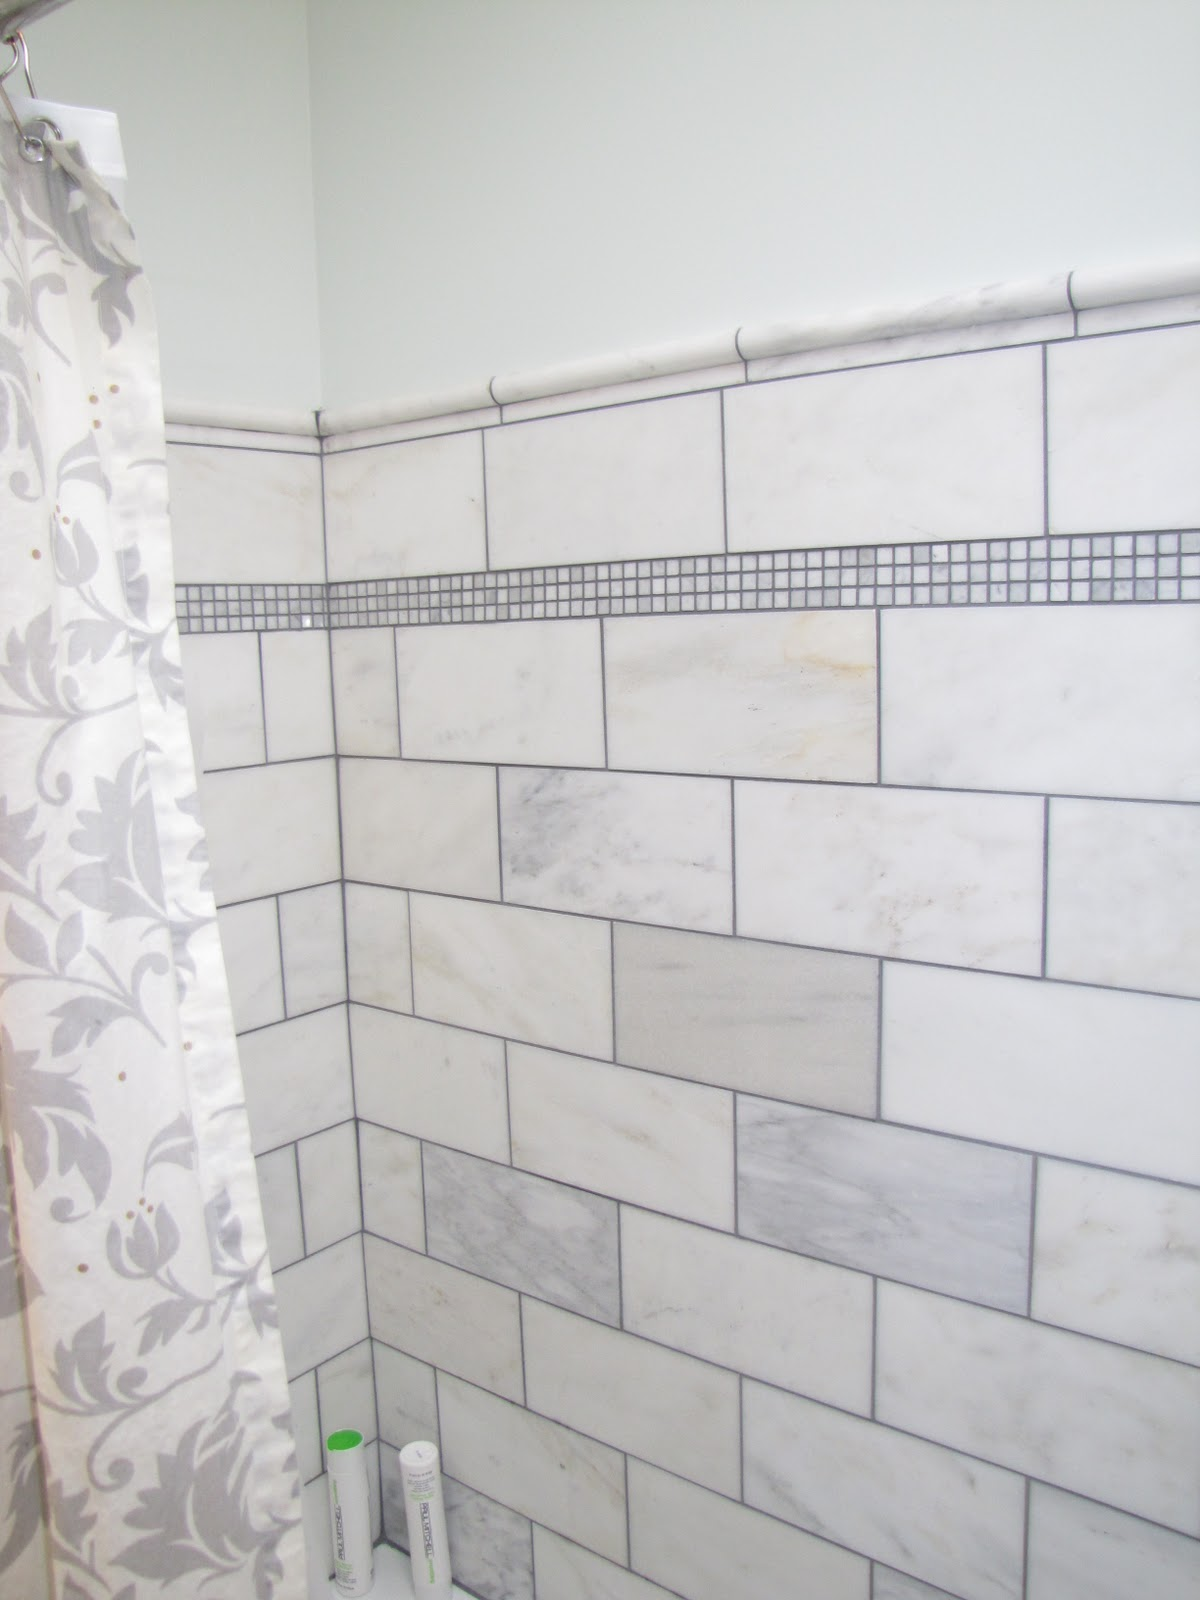 Last night 39 s leftovers happiness is a finished bathroom - Home depot bathroom tile installation cost ...